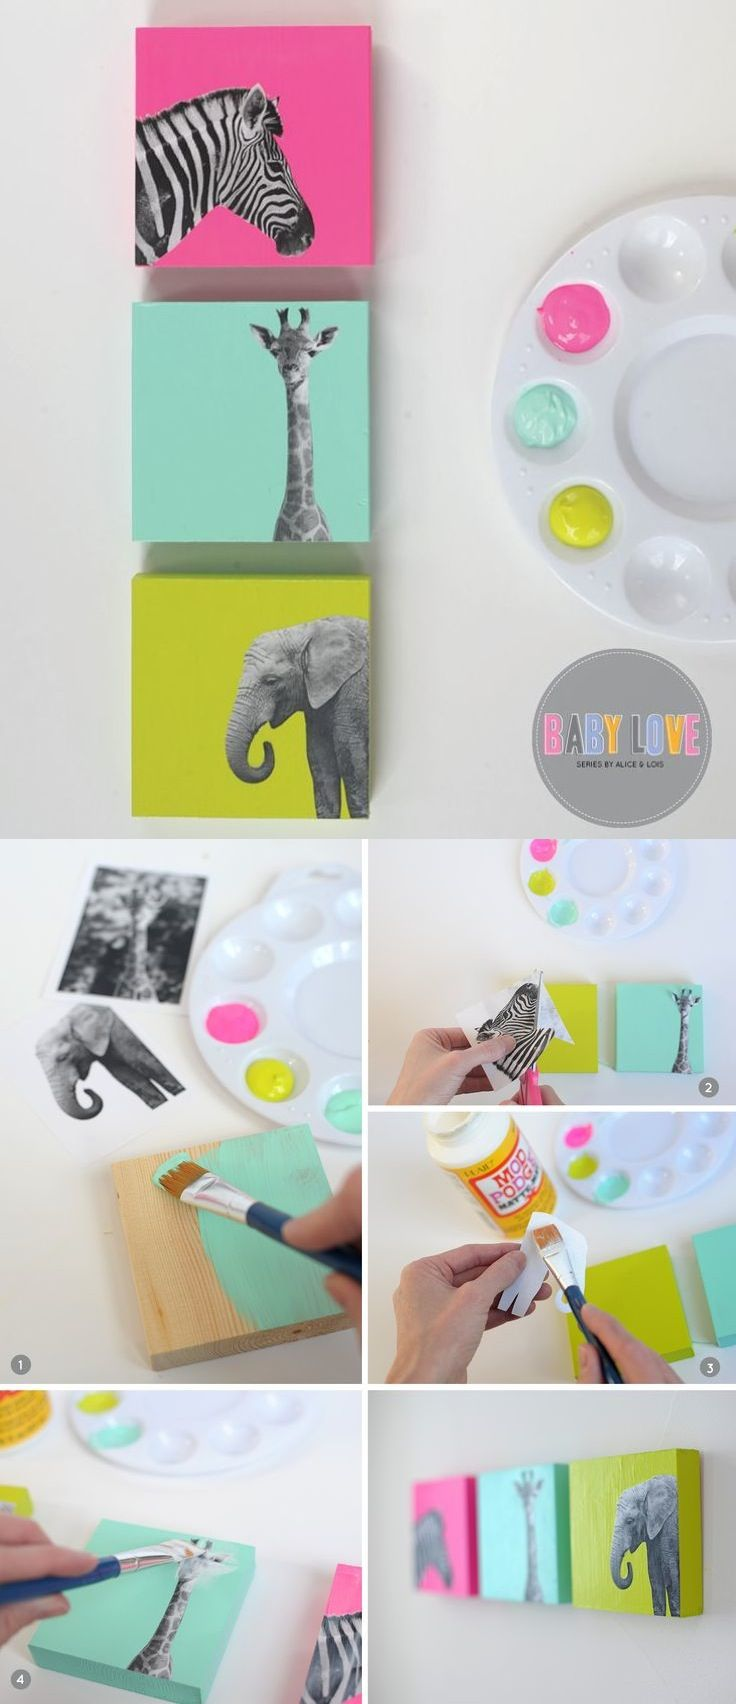 DIY Wrapping Gifts Inspiration